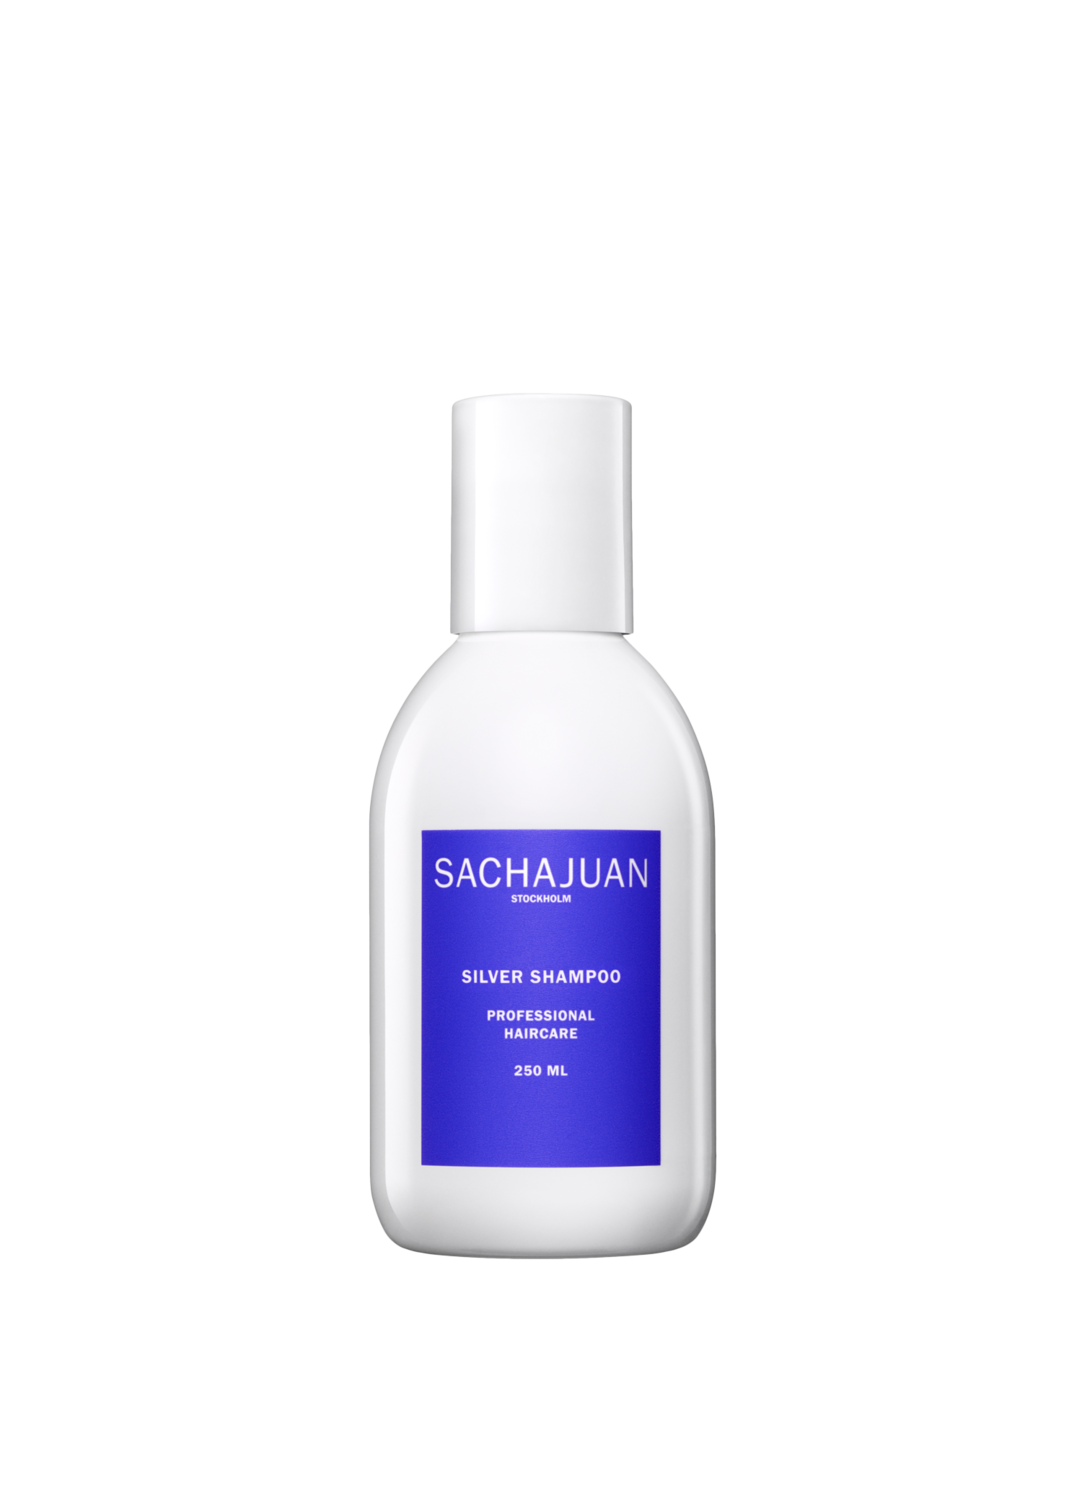 sachajuan | silver shampoo[product_type ]sachajuan - Kiss and Makeup